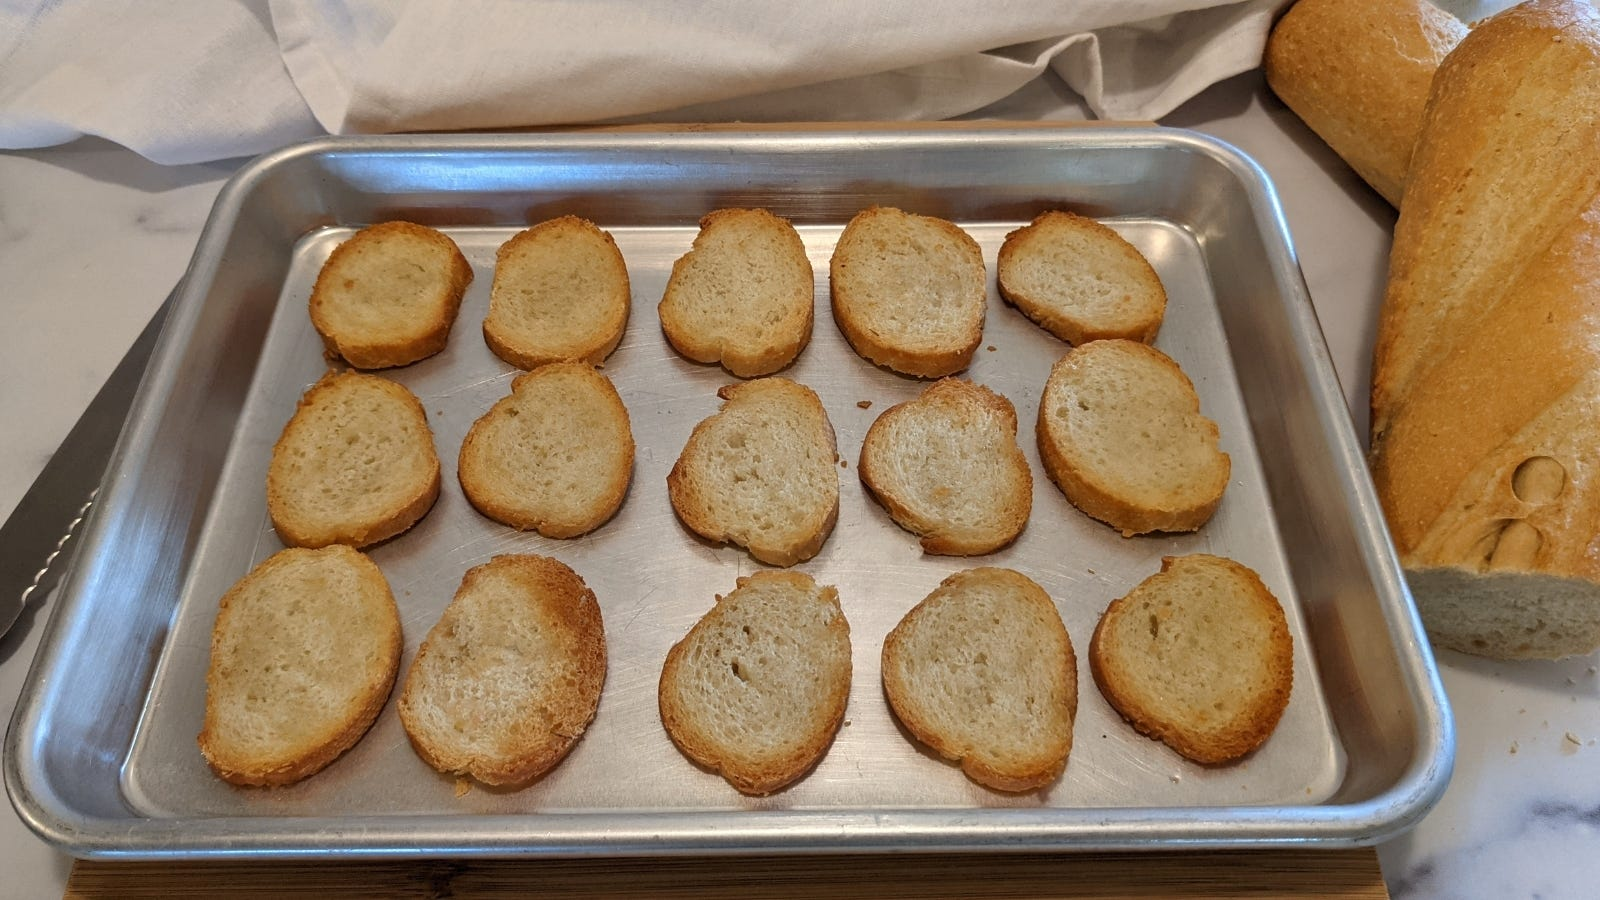 Multiple slices of French baguette placed on a sheet pan, freshly toasted in the oven.